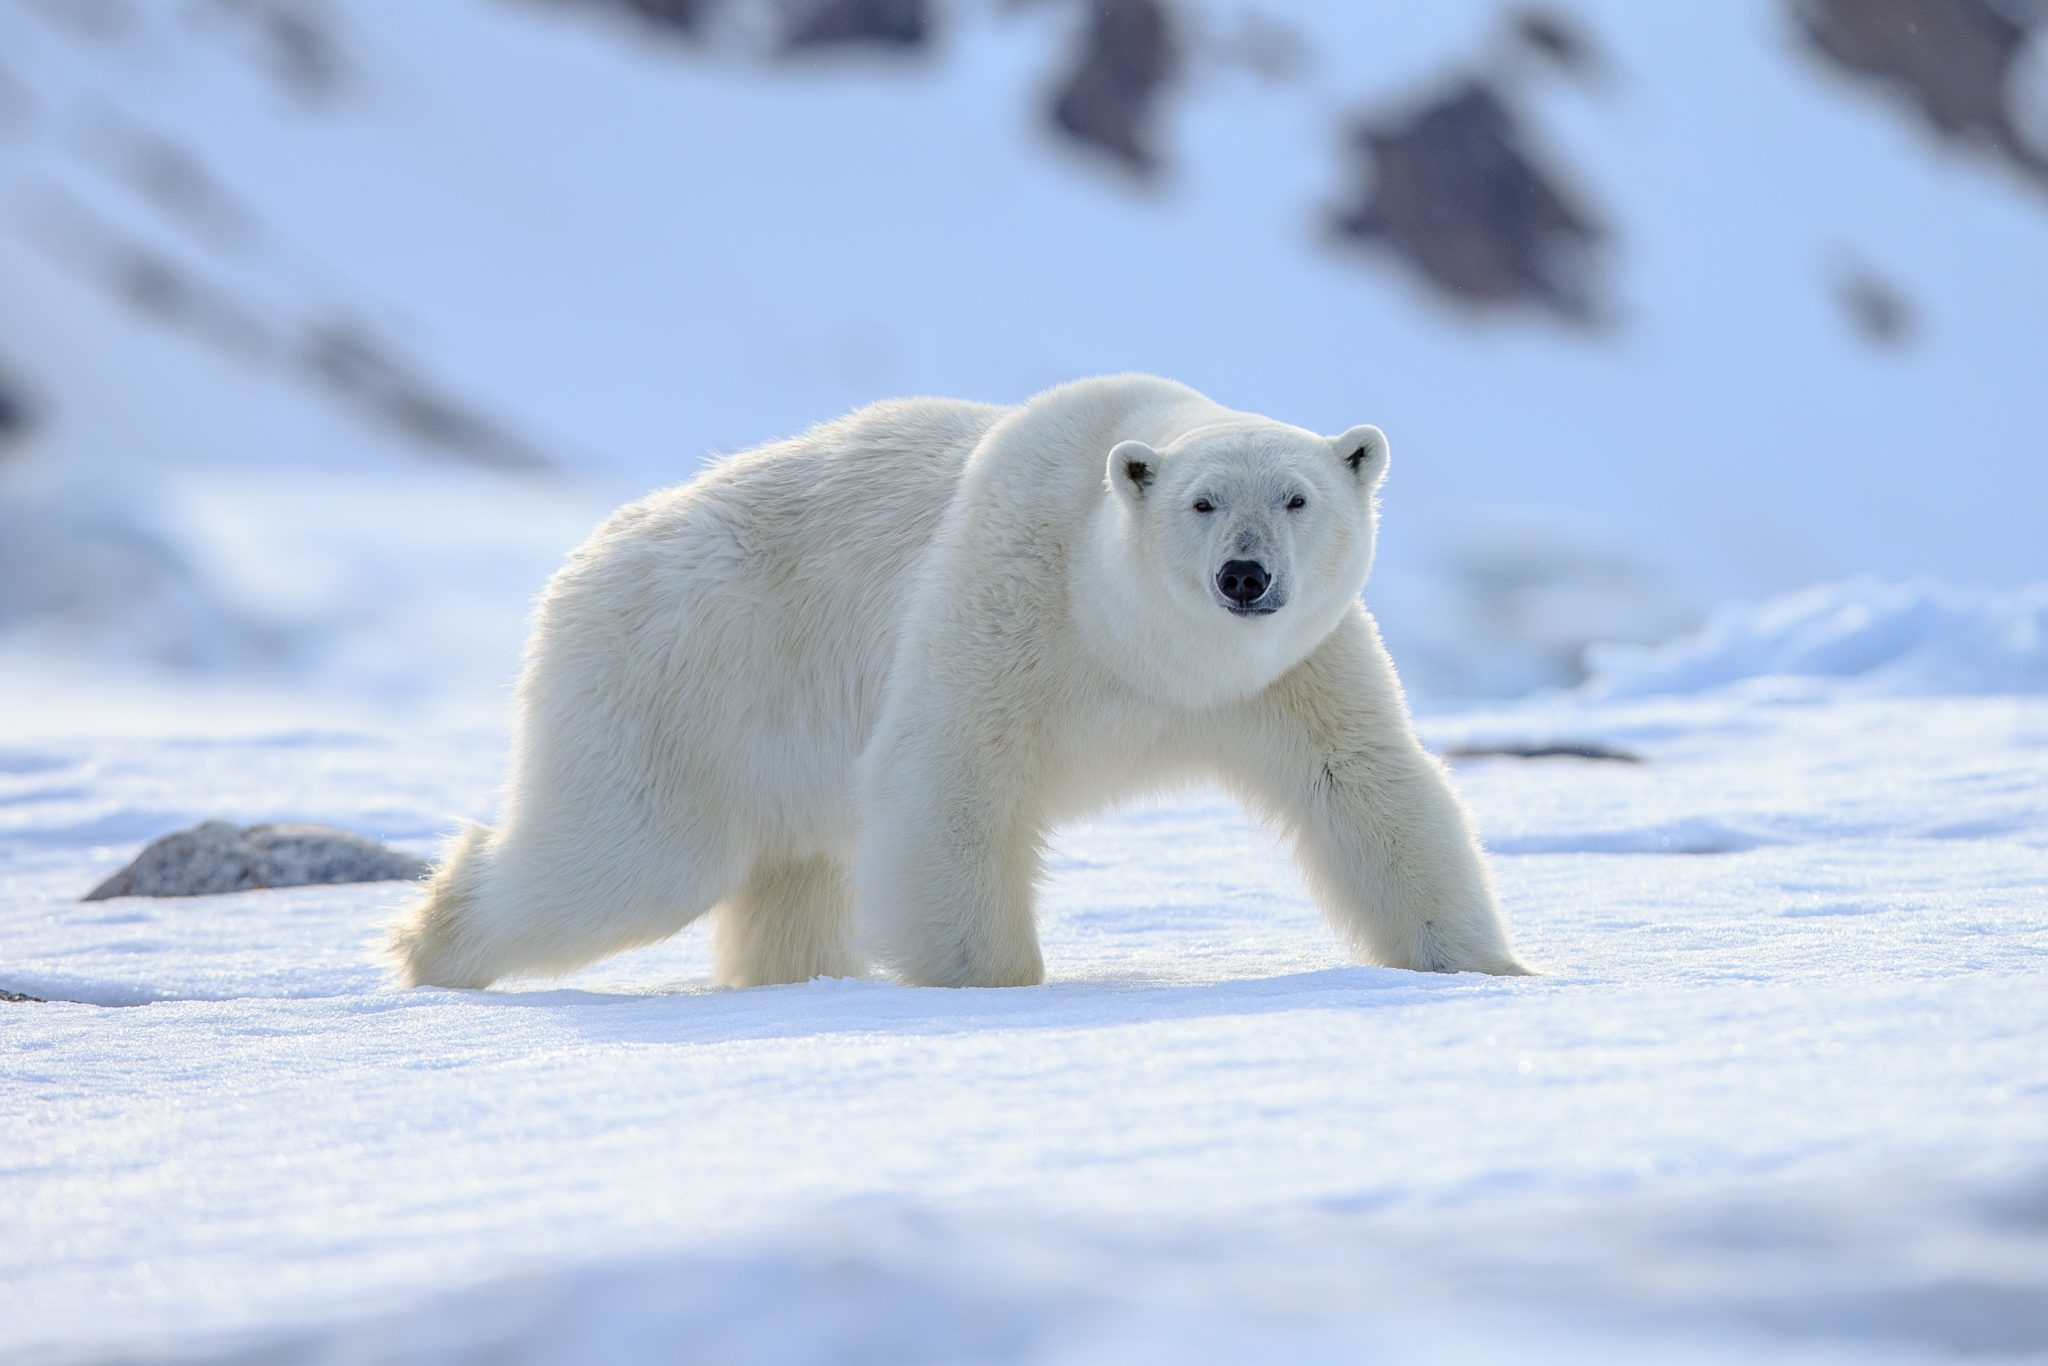 Petition: Ban Polar Bear Trophy Hunting